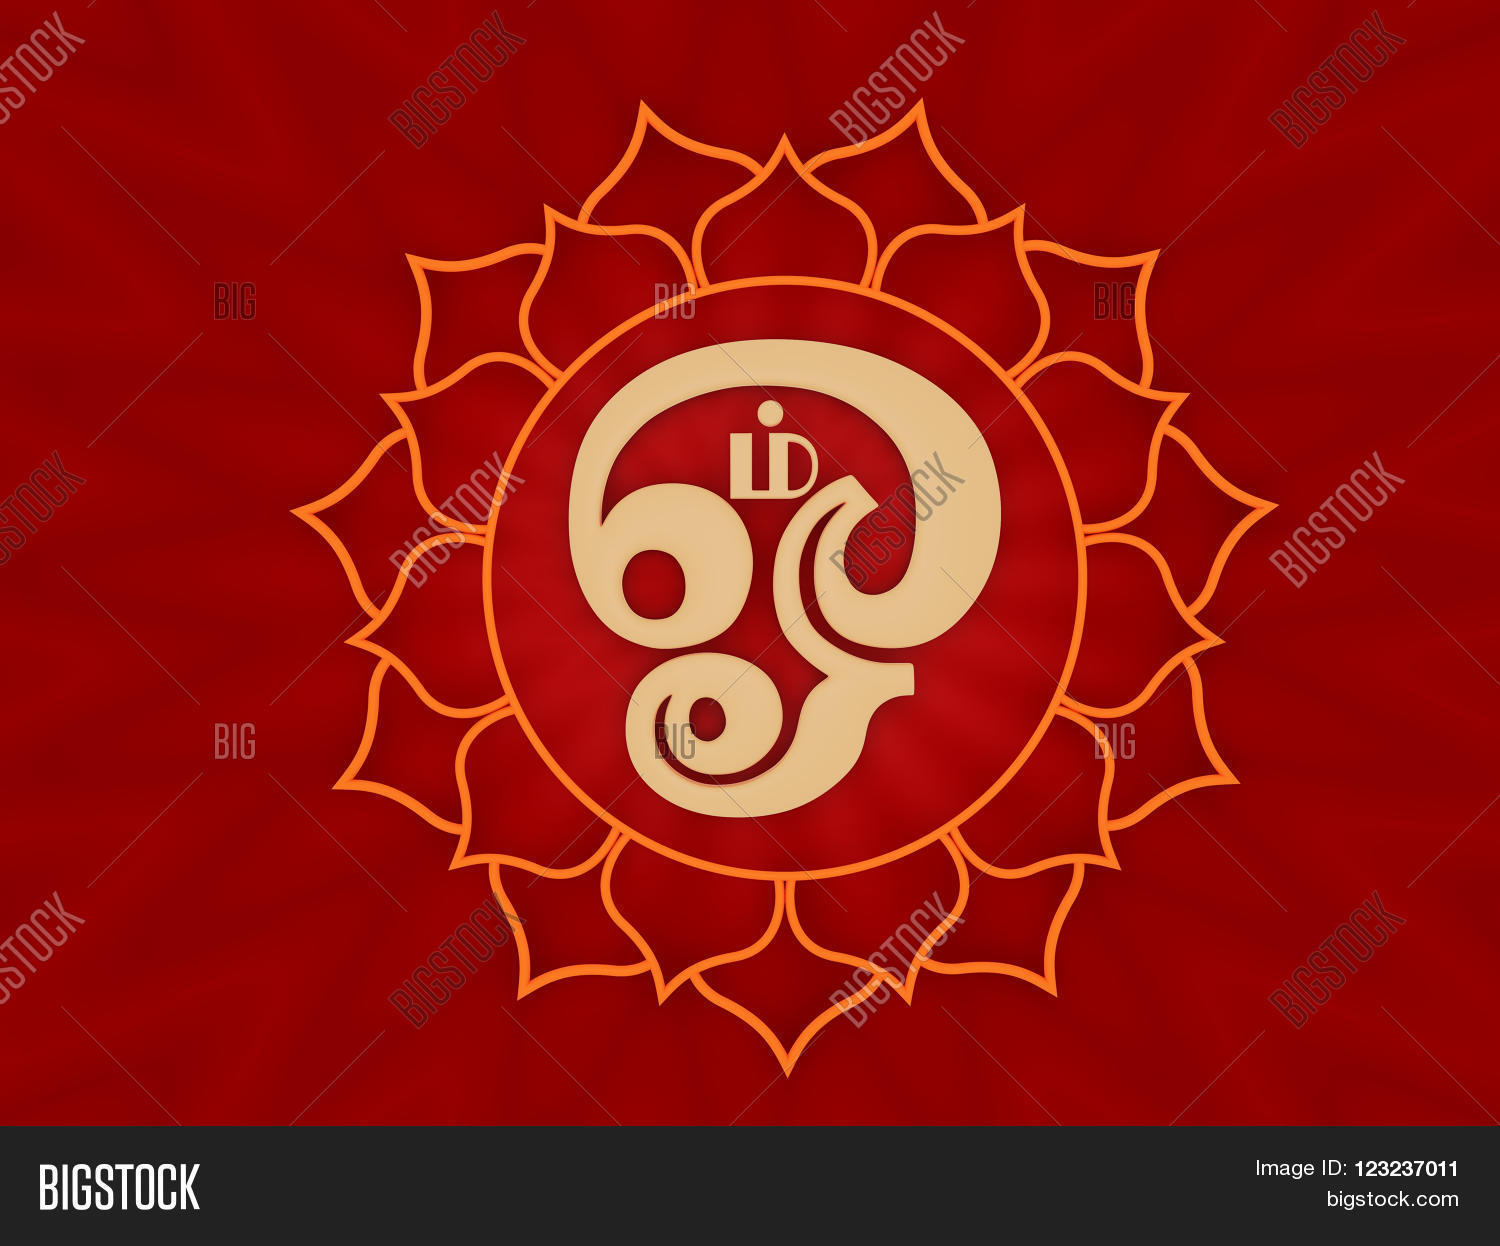 Hindu Tamil Om Symbol 3d Rendered Image Photo Bigstock